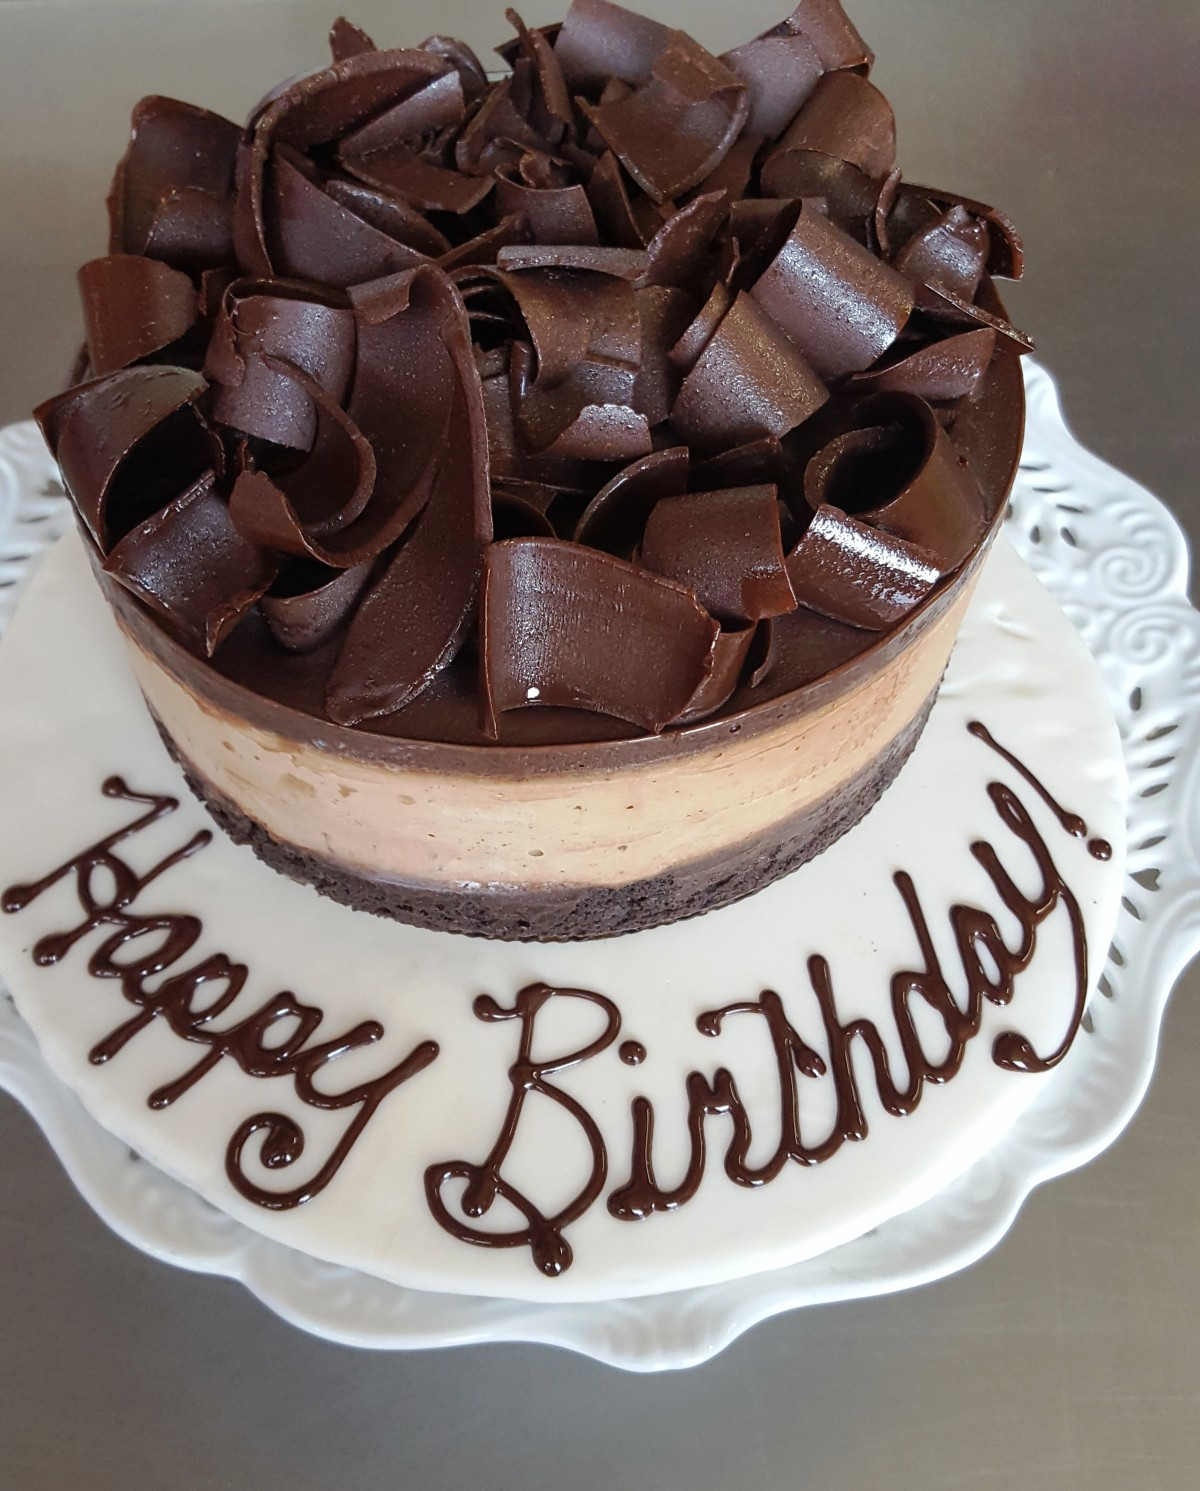 Best ideas about Happy Birthday Choco Cake . Save or Pin Happy Birthday Chocolate Cake Gluten Free Specialty Cake Now.